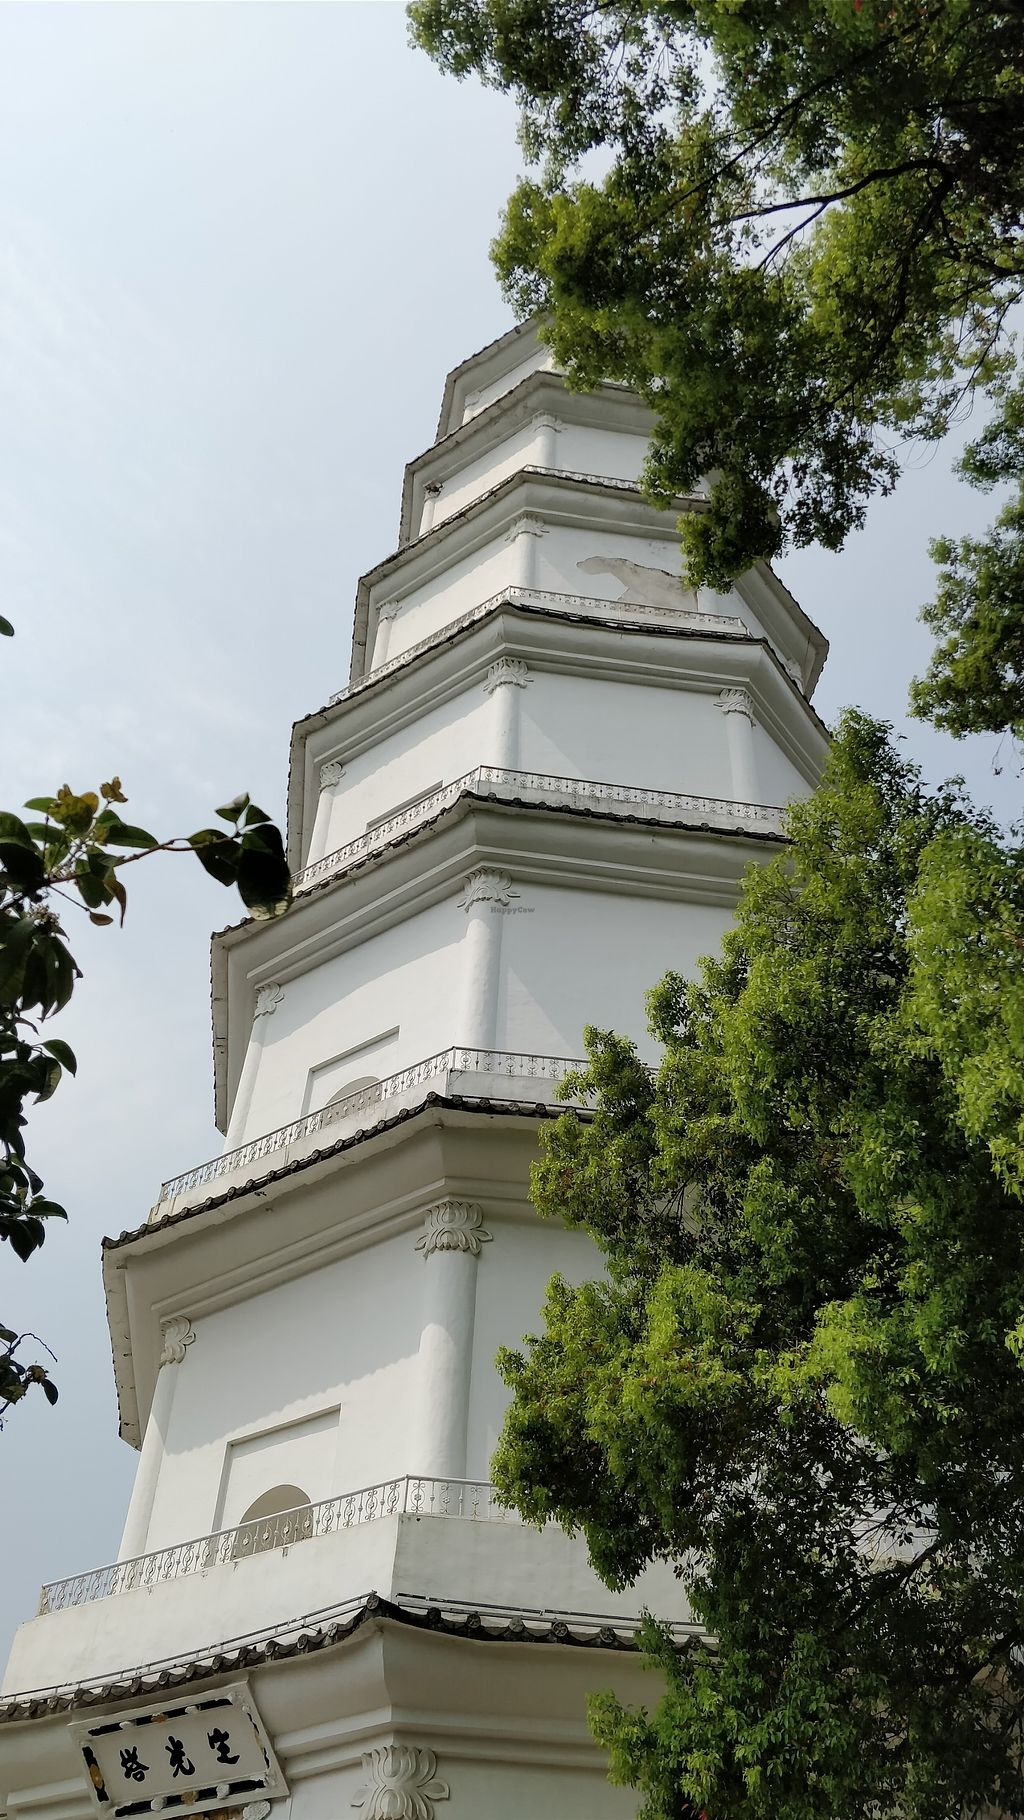 """Photo of Haozizai  by <a href=""""/members/profile/ultm8"""">ultm8</a> <br/>Look for this tower inside the temple to find the entrance <br/> March 21, 2018  - <a href='/contact/abuse/image/114896/373600'>Report</a>"""